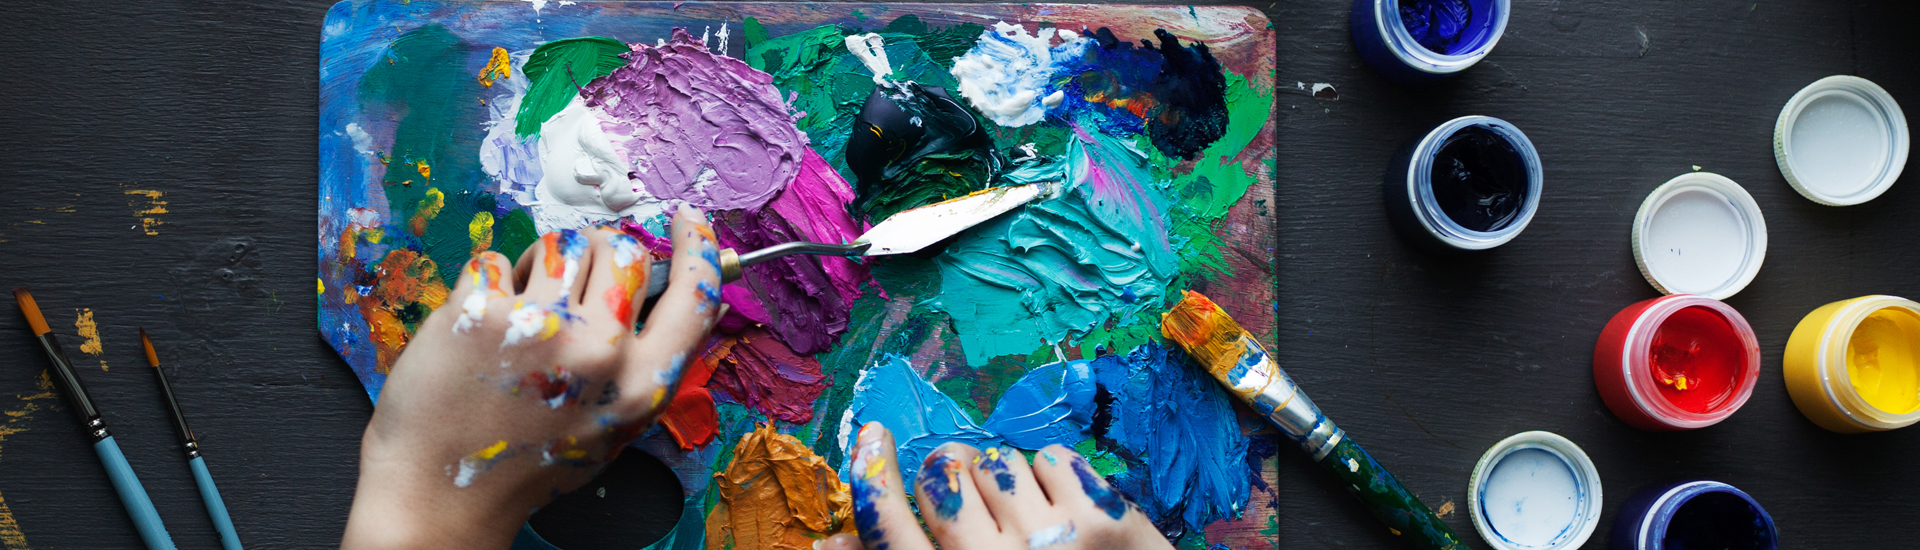 The Artist's Hands with Palette Knife